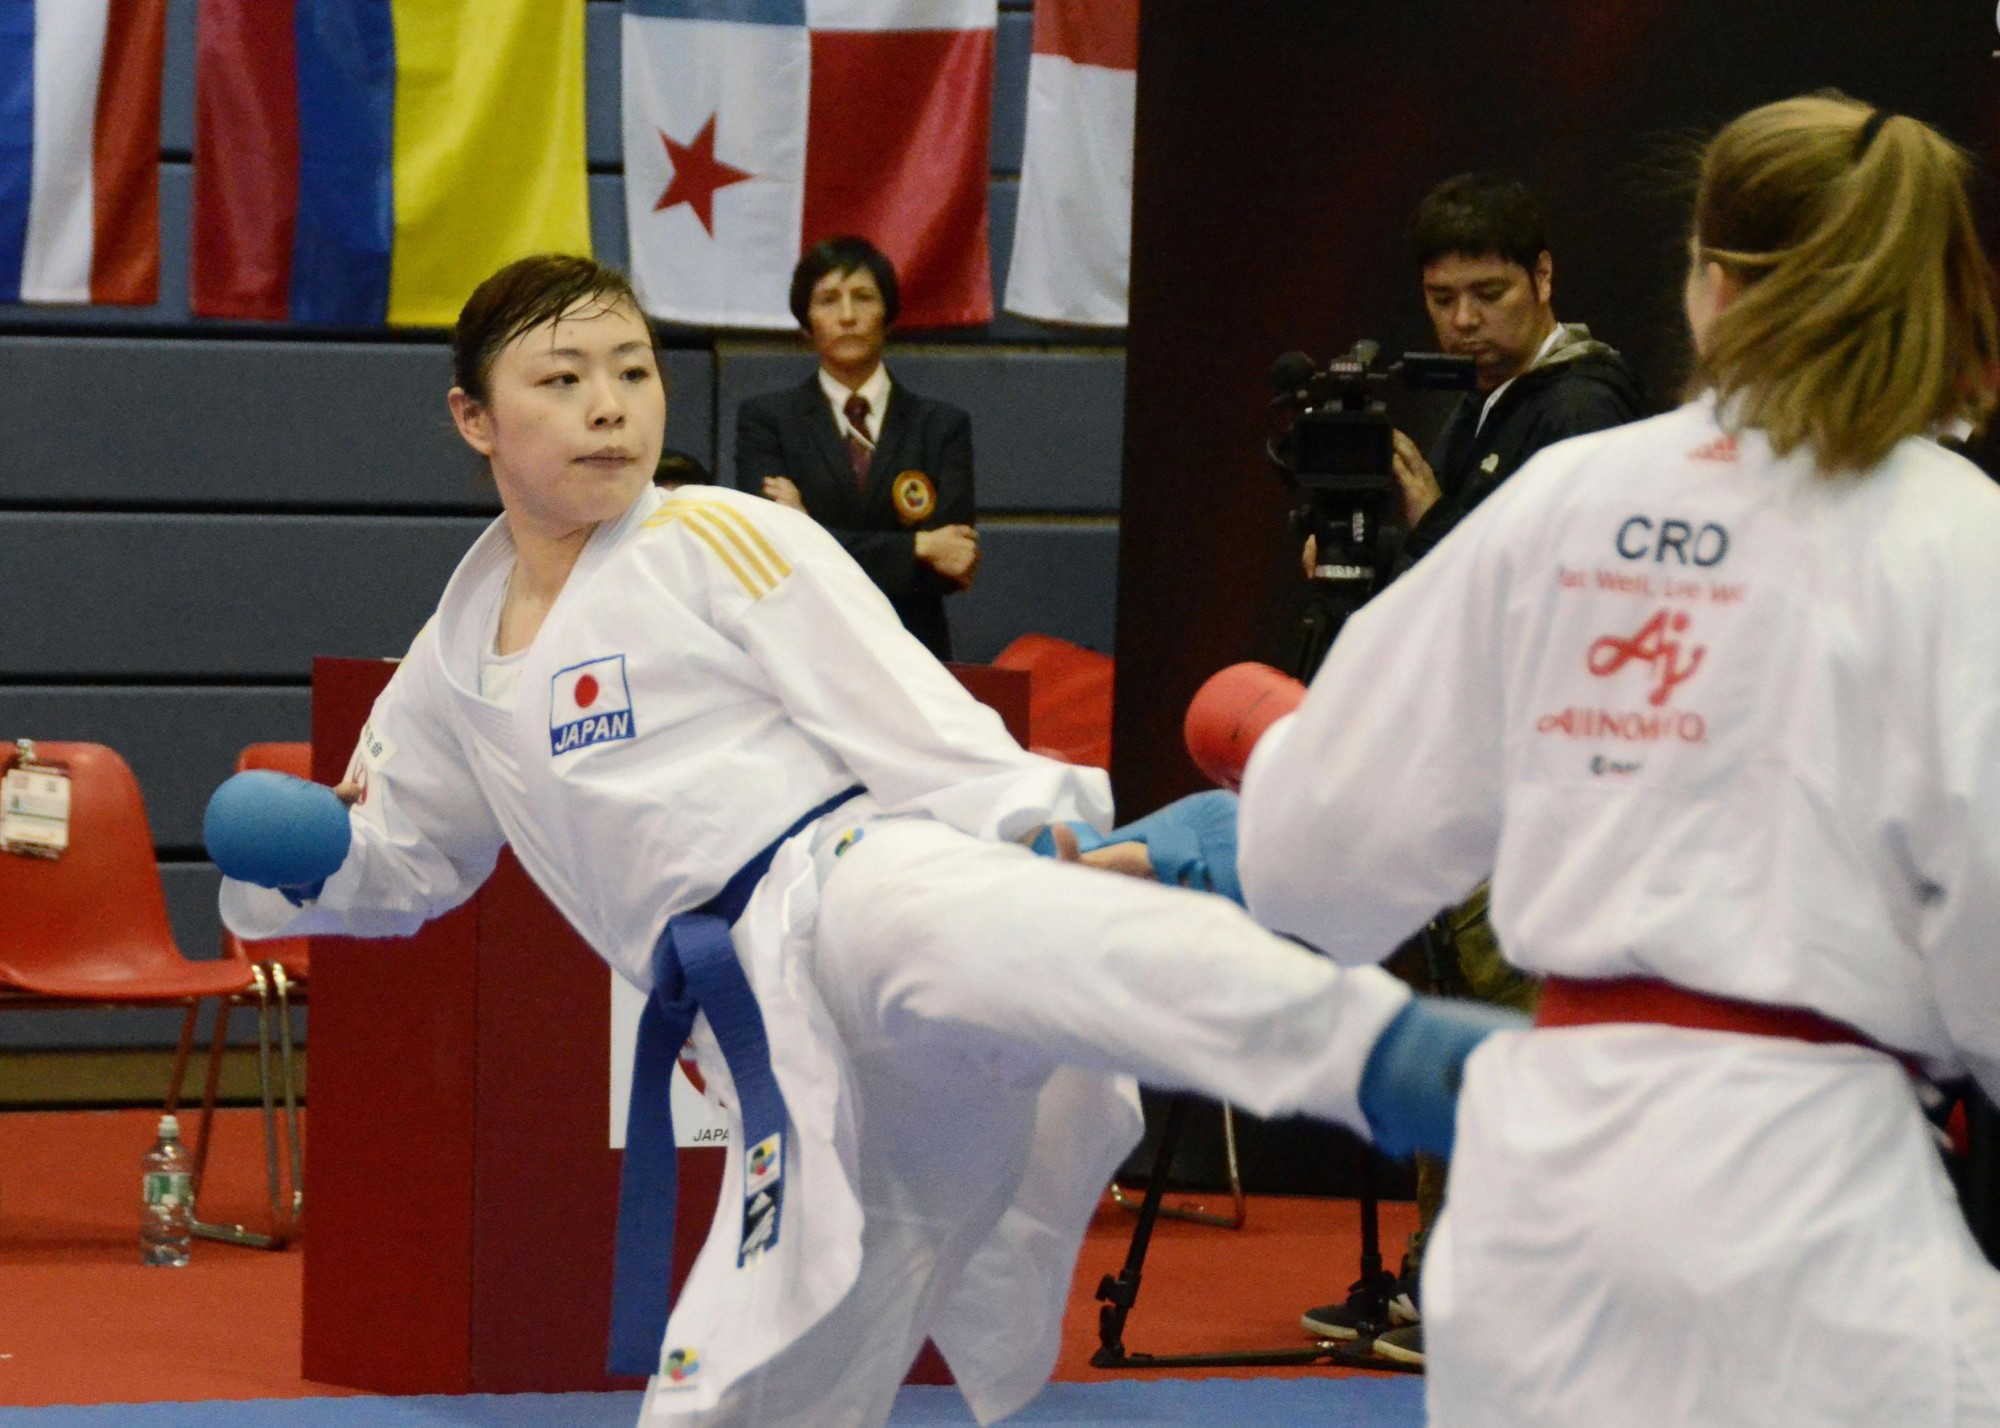 Ayumi Uekusa competes in the third round of the women's over-68-kg kumite compettition at a Karate 1-Premier League event in Salzburg, Austria. | KYODO